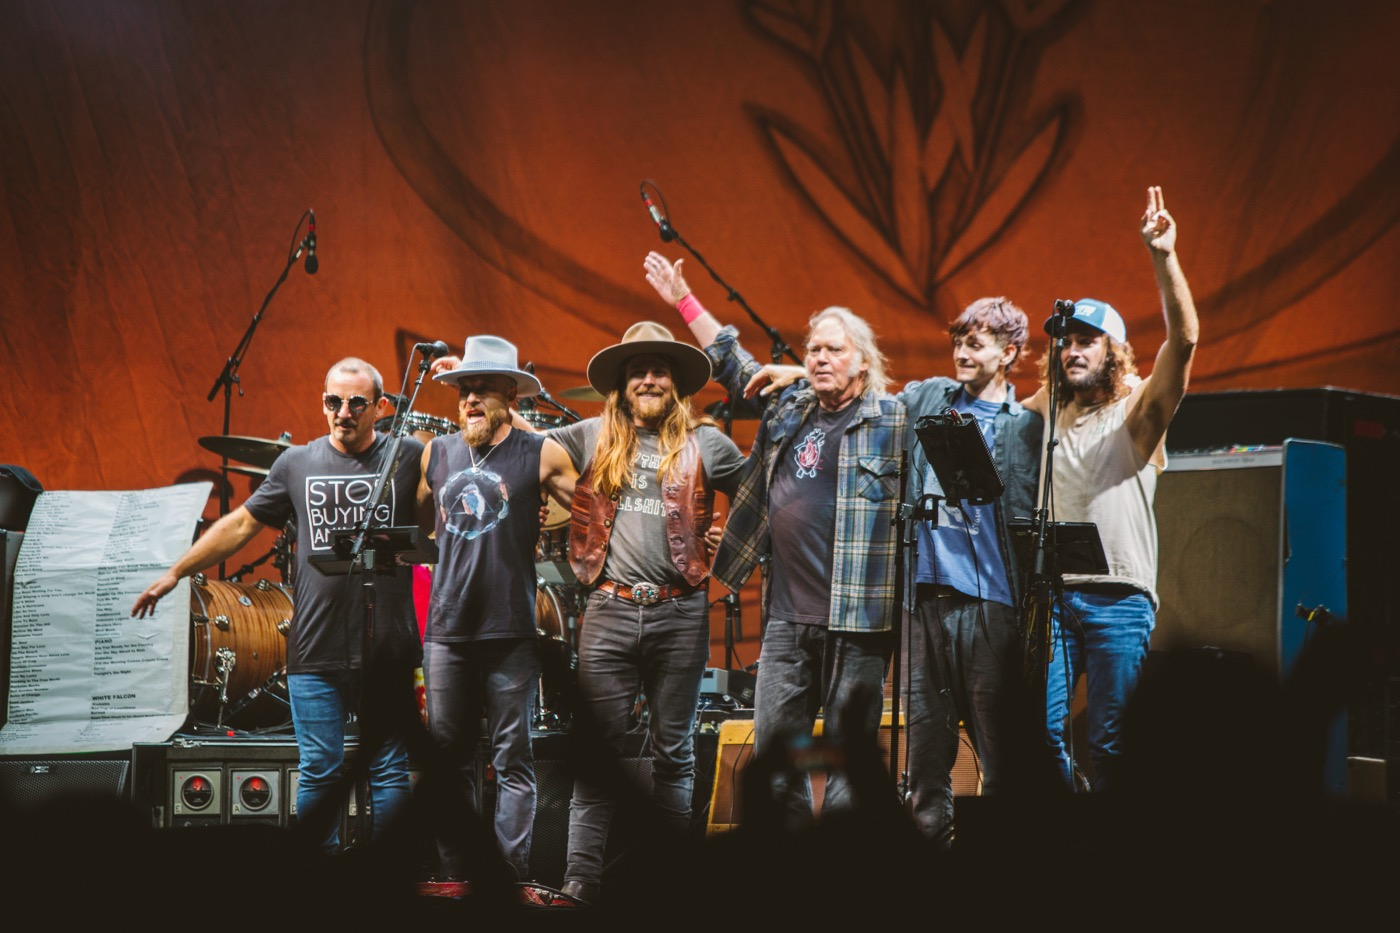 Neil Young + Promise of the Real @ Arroyo Seco Weekend 6/23/18. Photo courtesy of Goldenvoice. Used with permission.